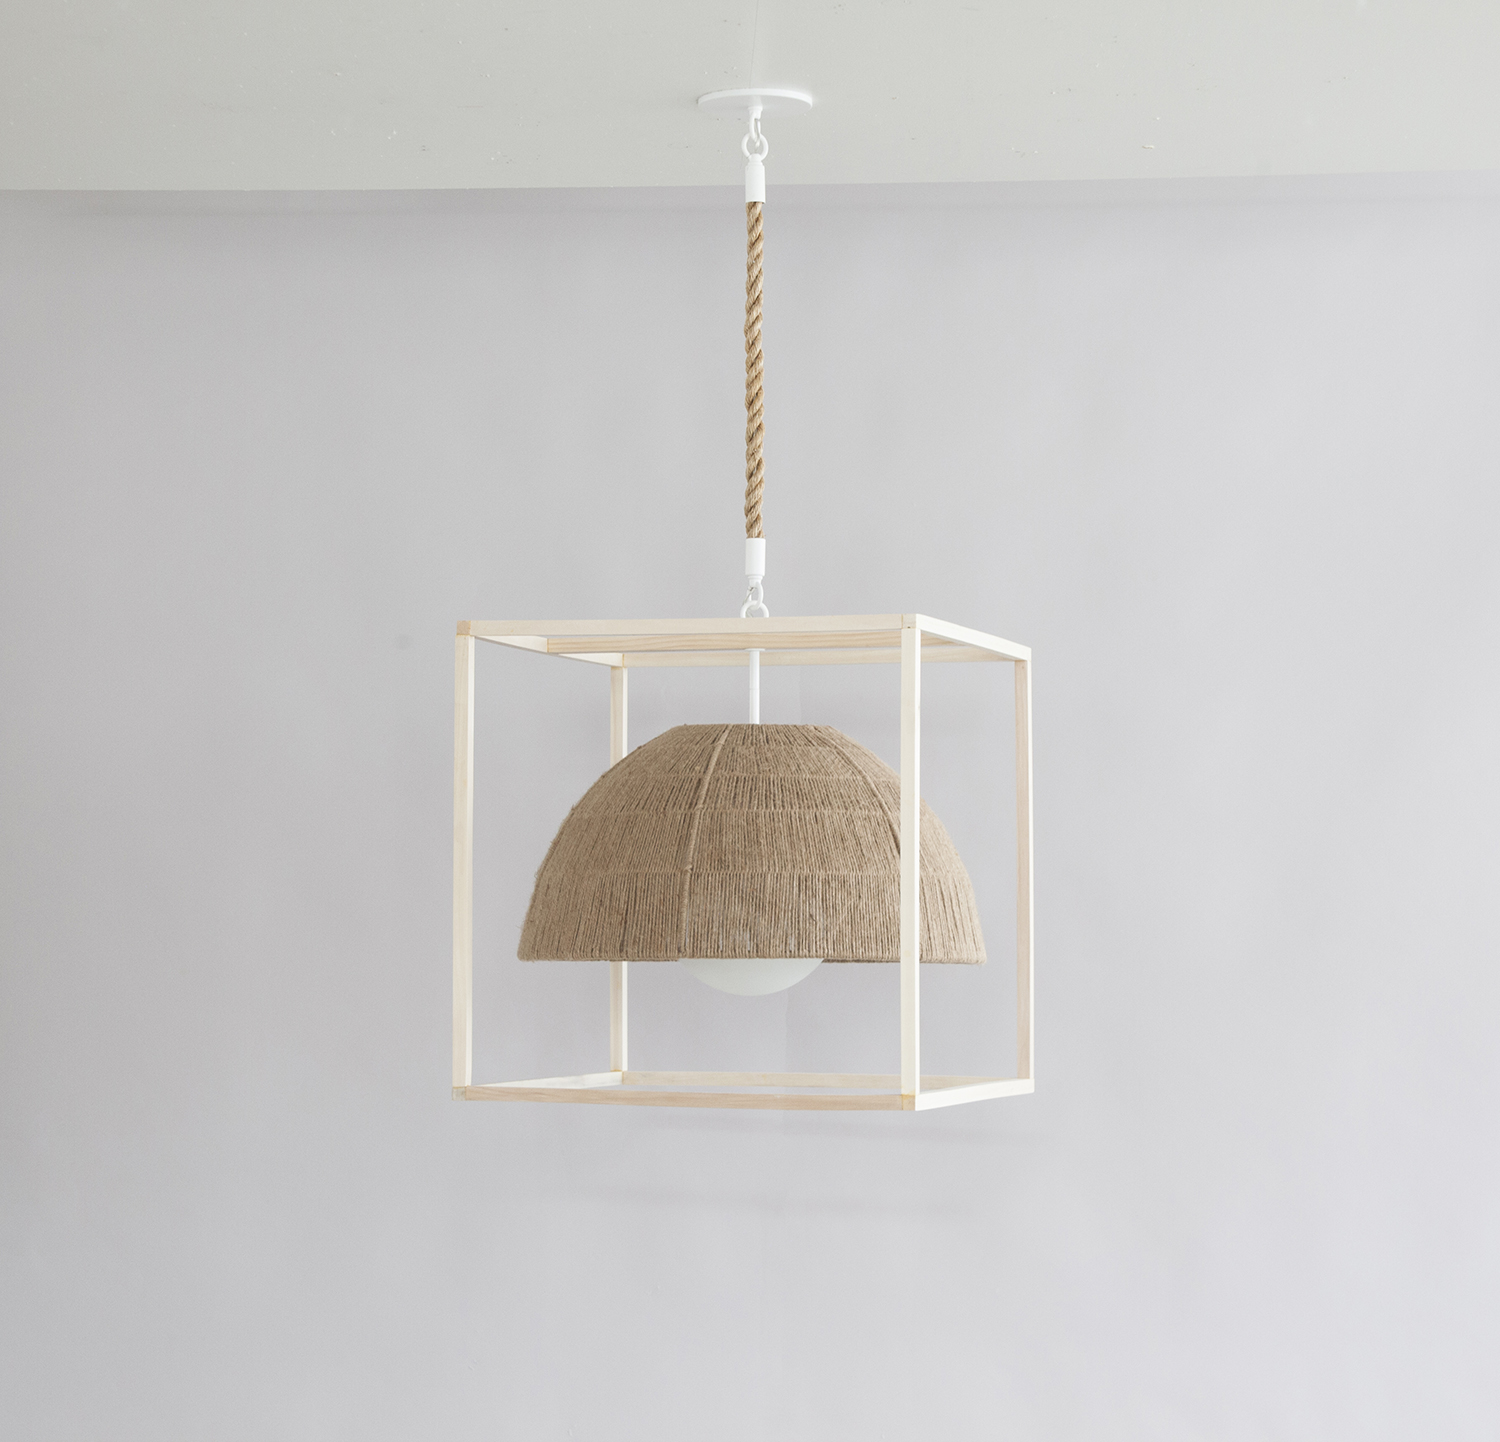 Boxed_C-227_Boxed Dome Rope Pendant_White_Jute_off.jpg